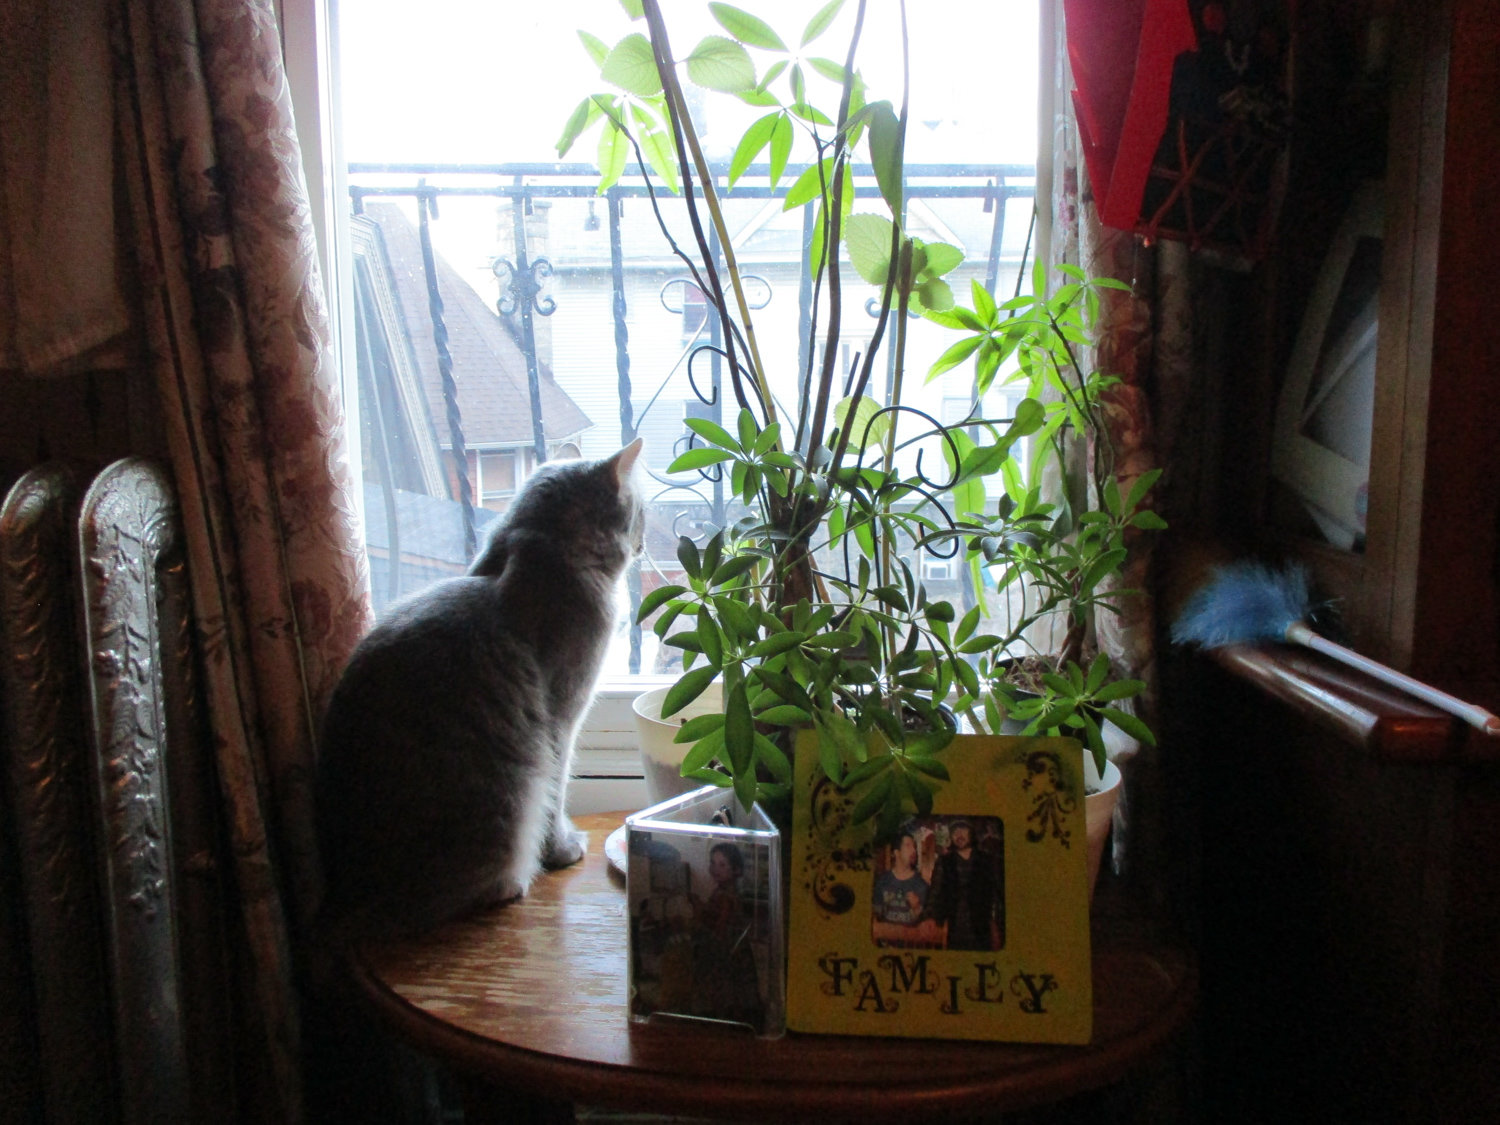 Bronx Senior Photo League member Carmen Moyer photographed a tranquil scene of her cat looking out the window.